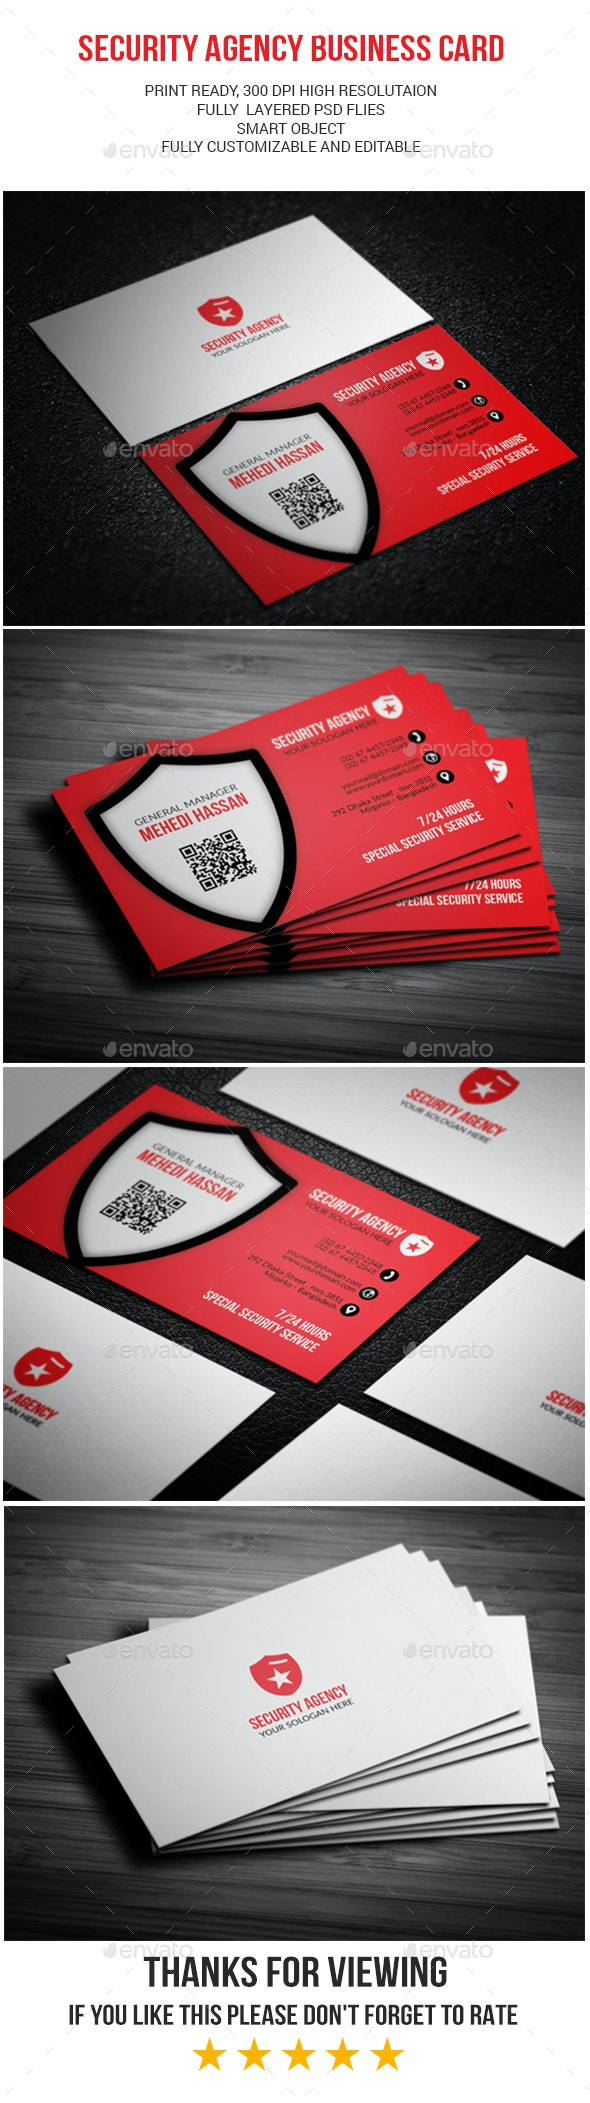 Security Agency business card - Industry Specific Business Cards